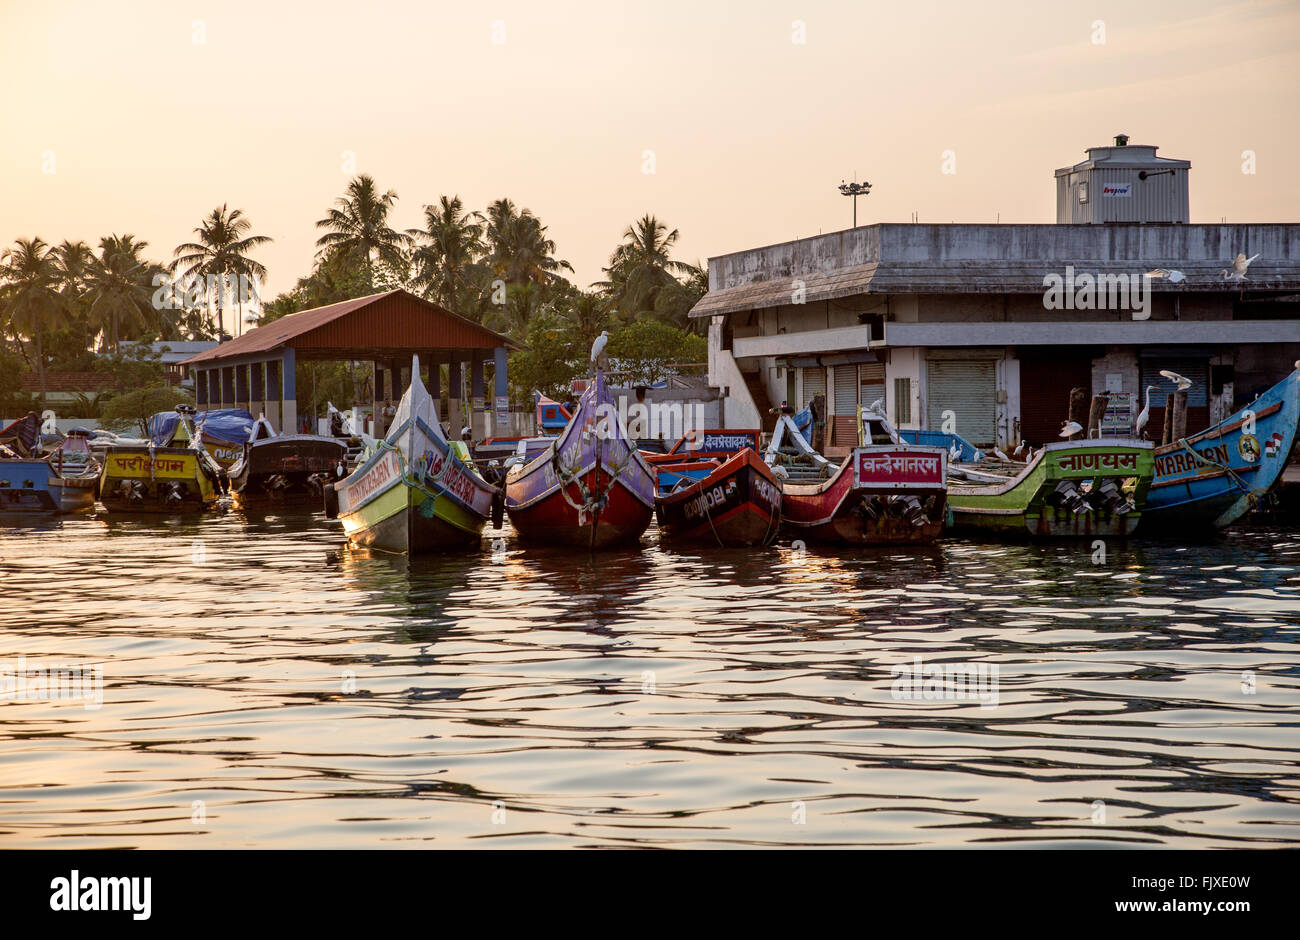 Kochi India Stock Photos & Kochi India Stock Images - Alamy